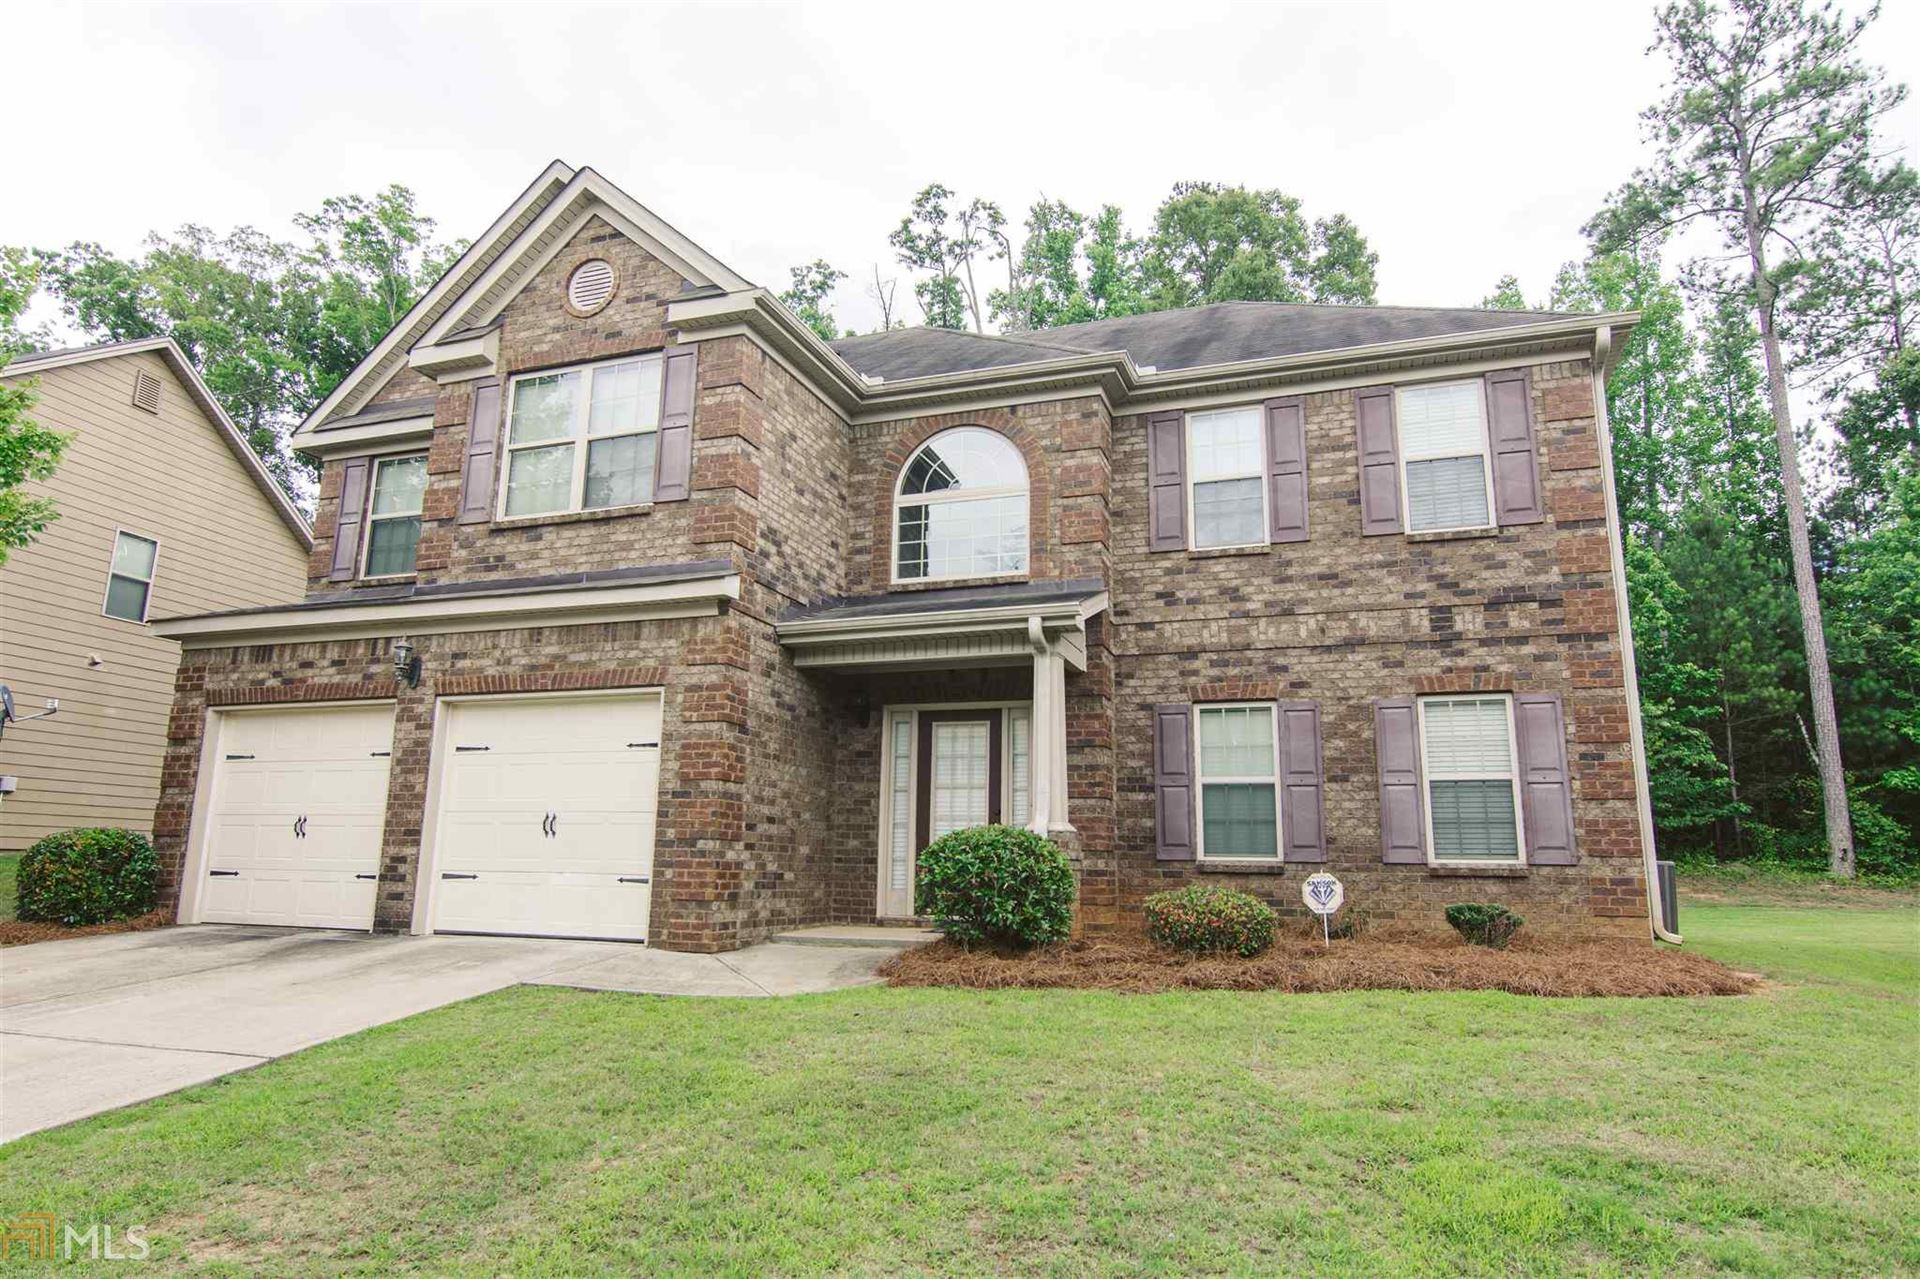 6513 Foggy Oak Dr, Fairburn, GA 30213 - #: 8810237